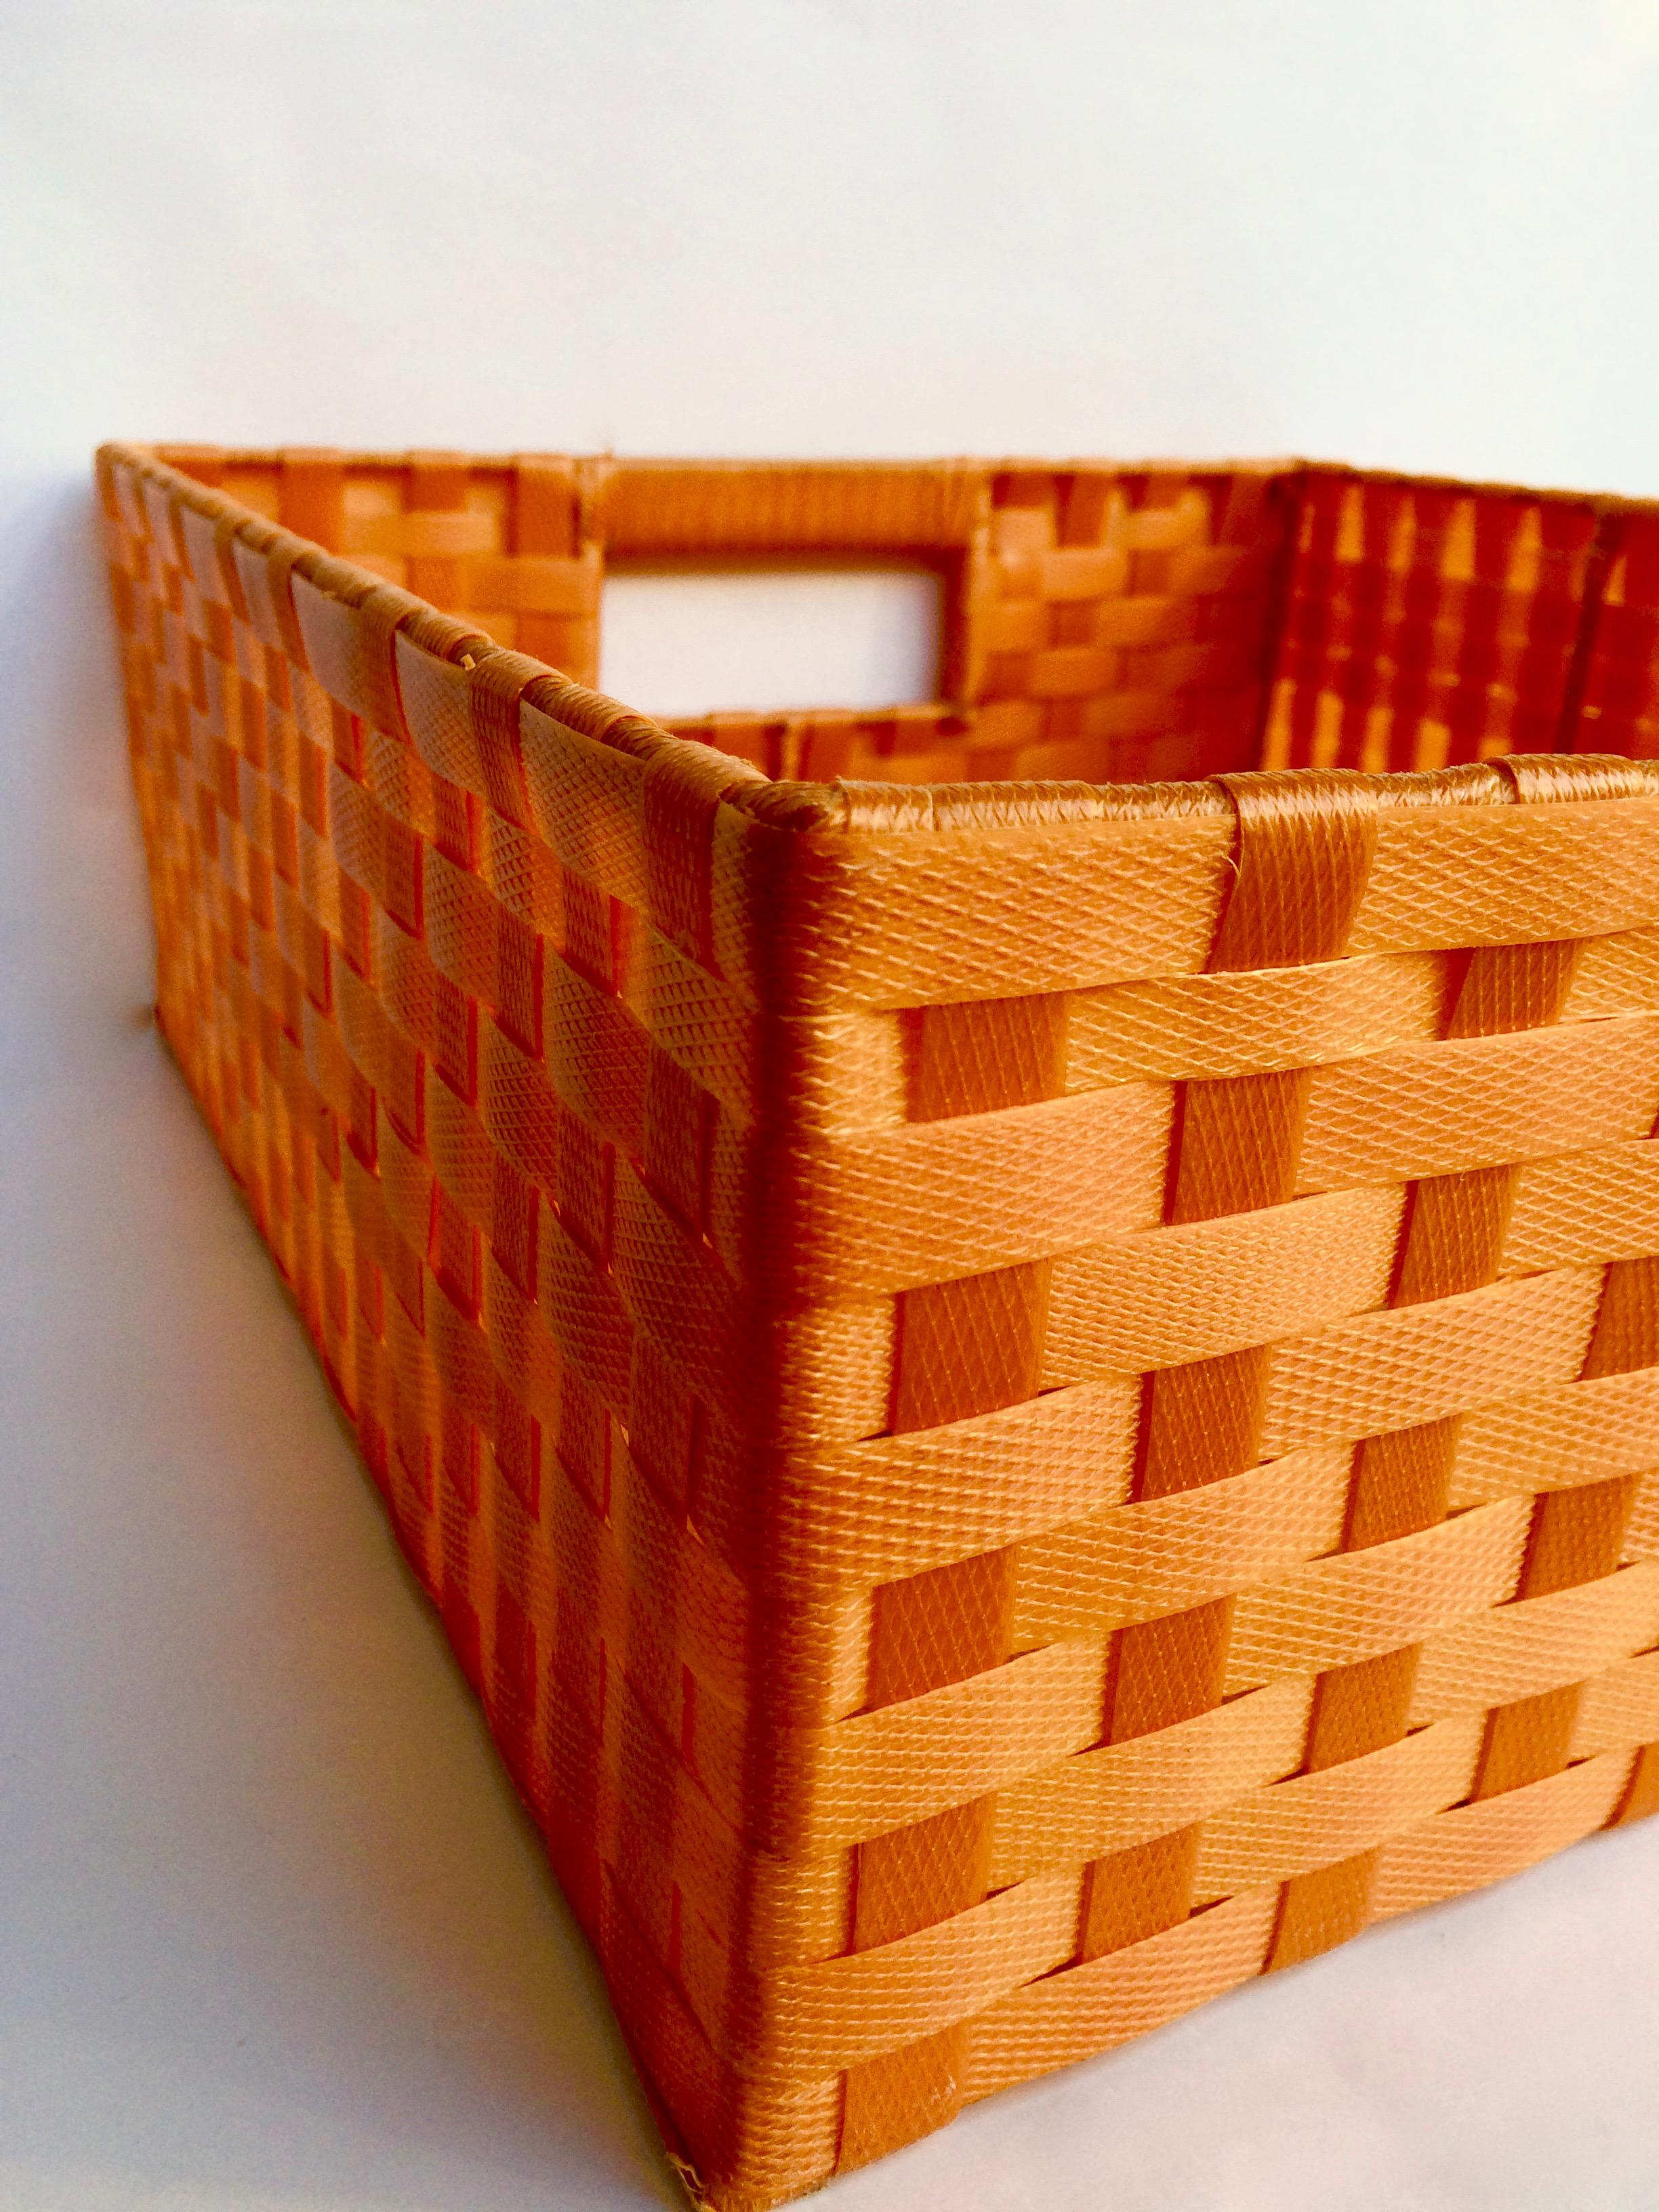 Incroyable Vintage Woven Plastic Storage Baskets   Set Of 3 For Sale   Image 4 Of 9